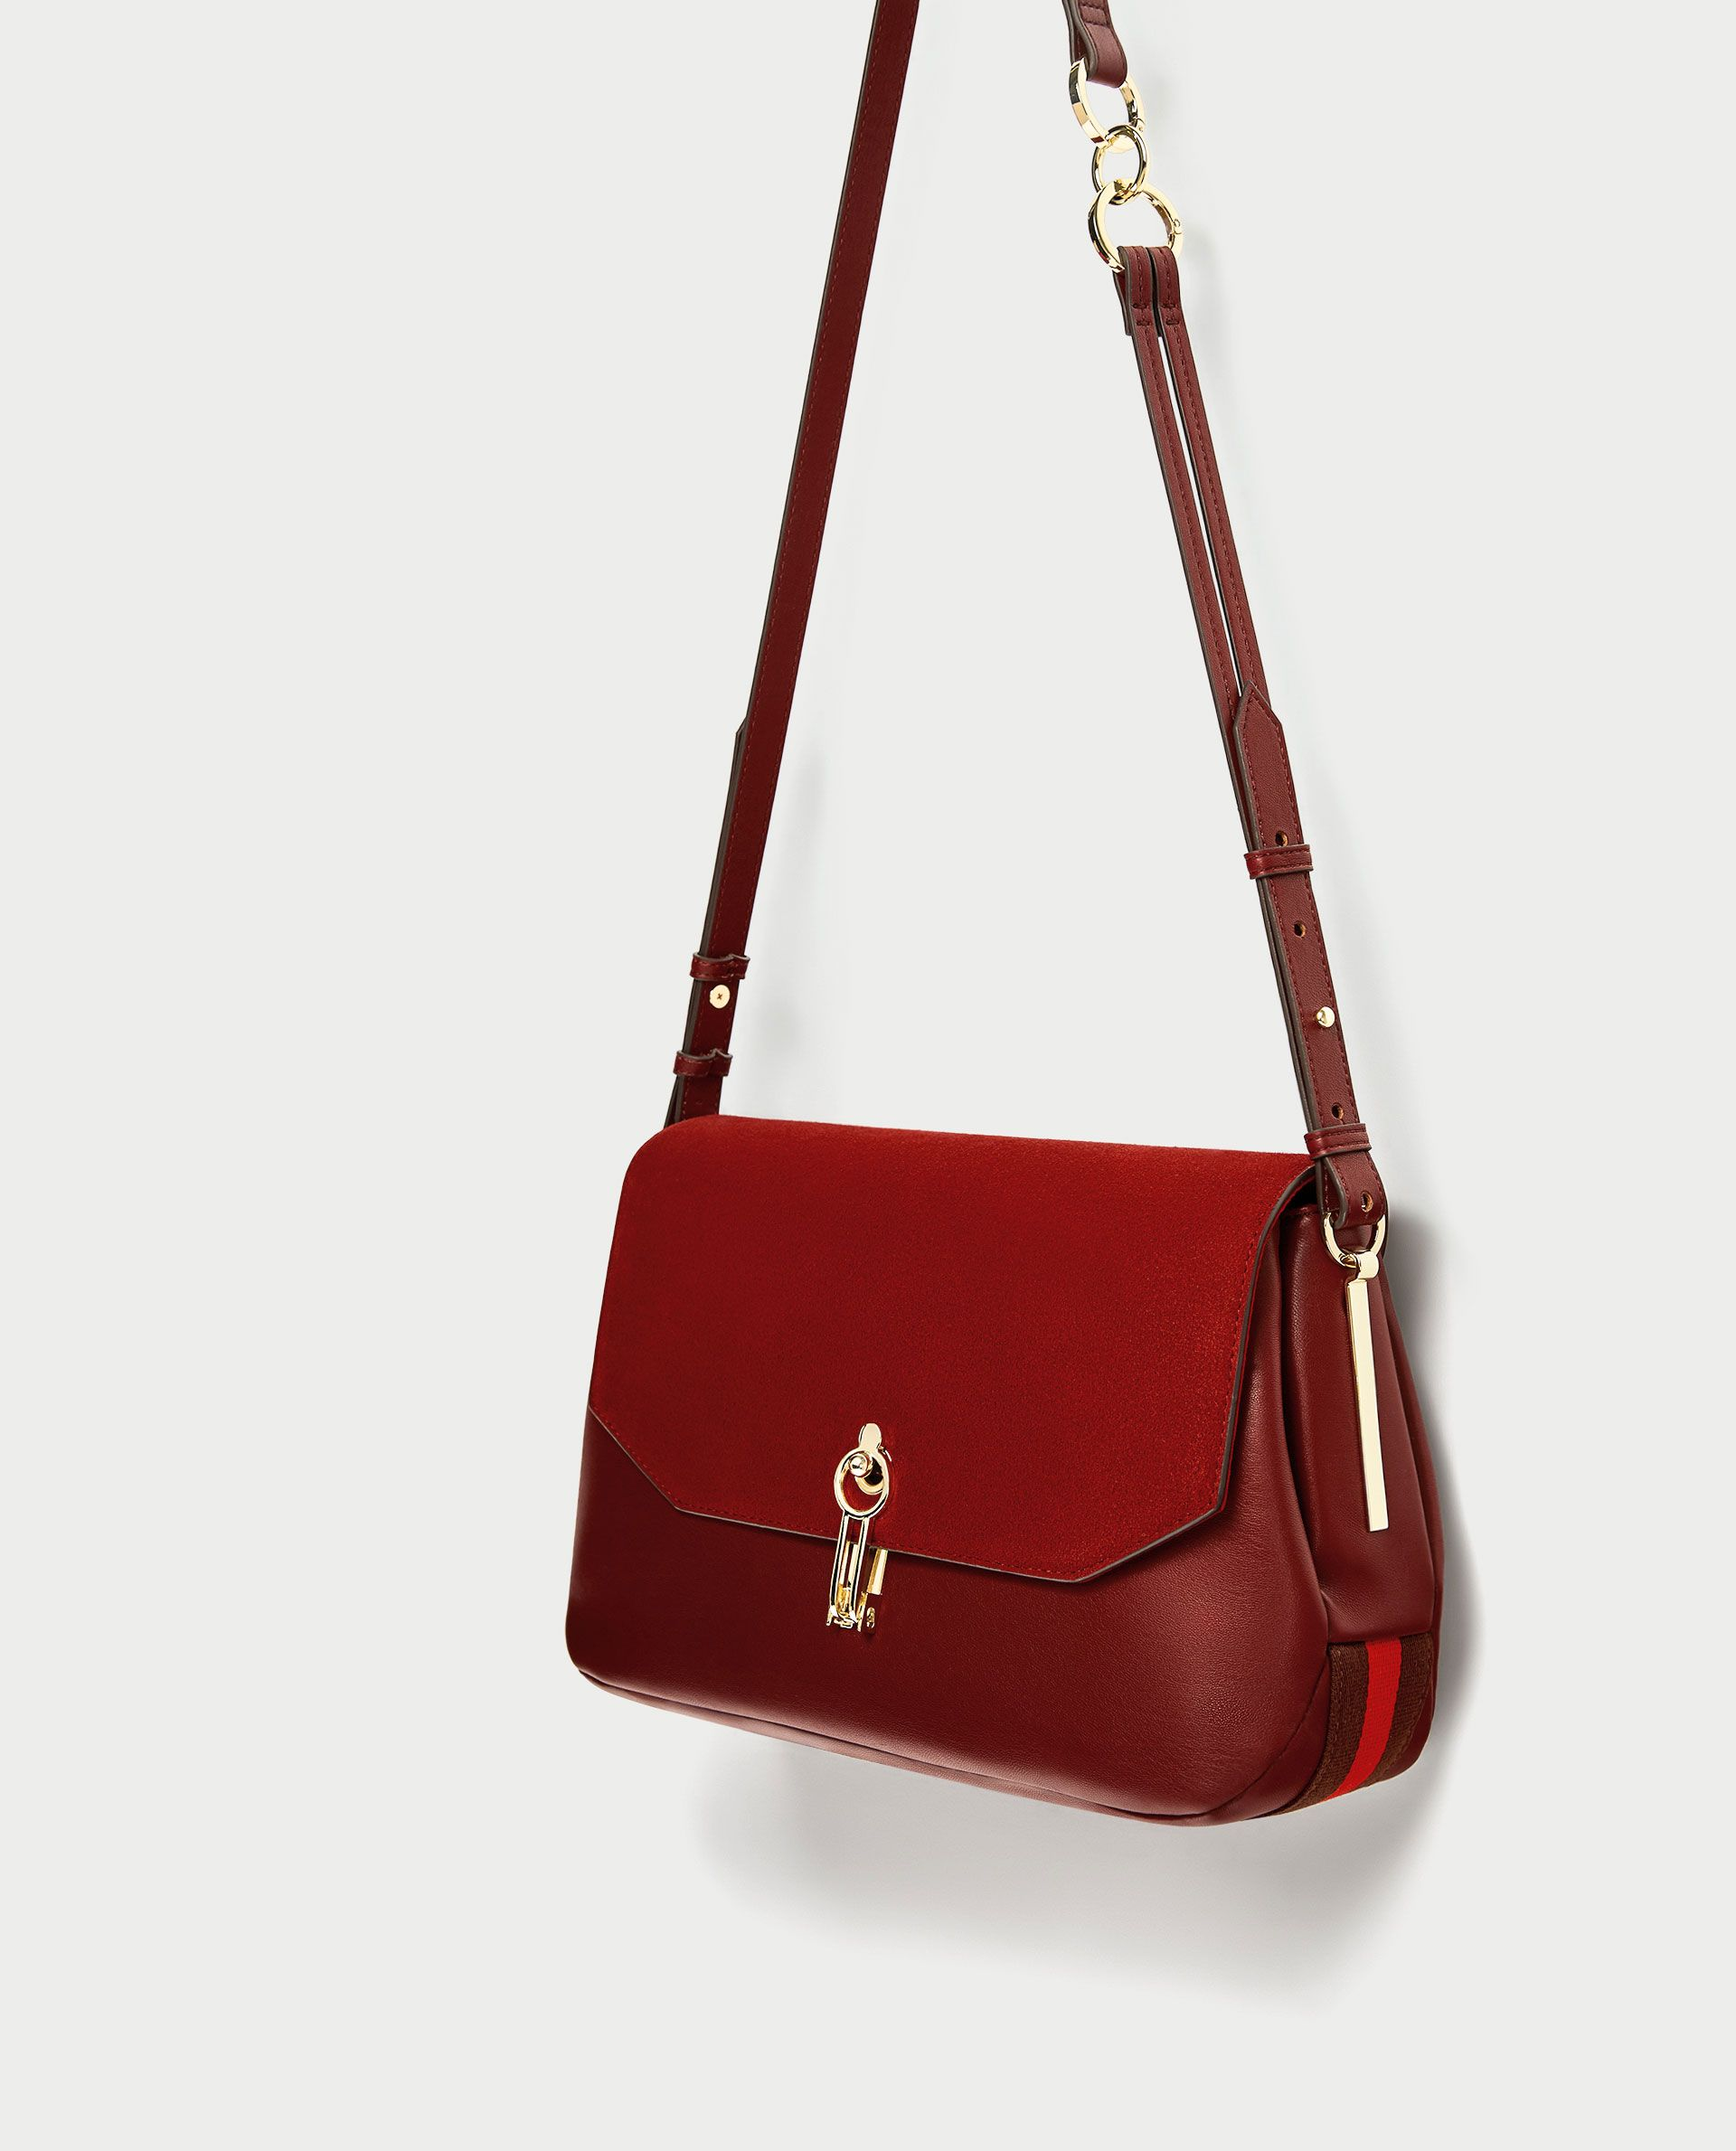 5b5f0ce9 BANDOLERA SOLAPA PIEL in 2019 | Bags | Leather crossbody bag ...